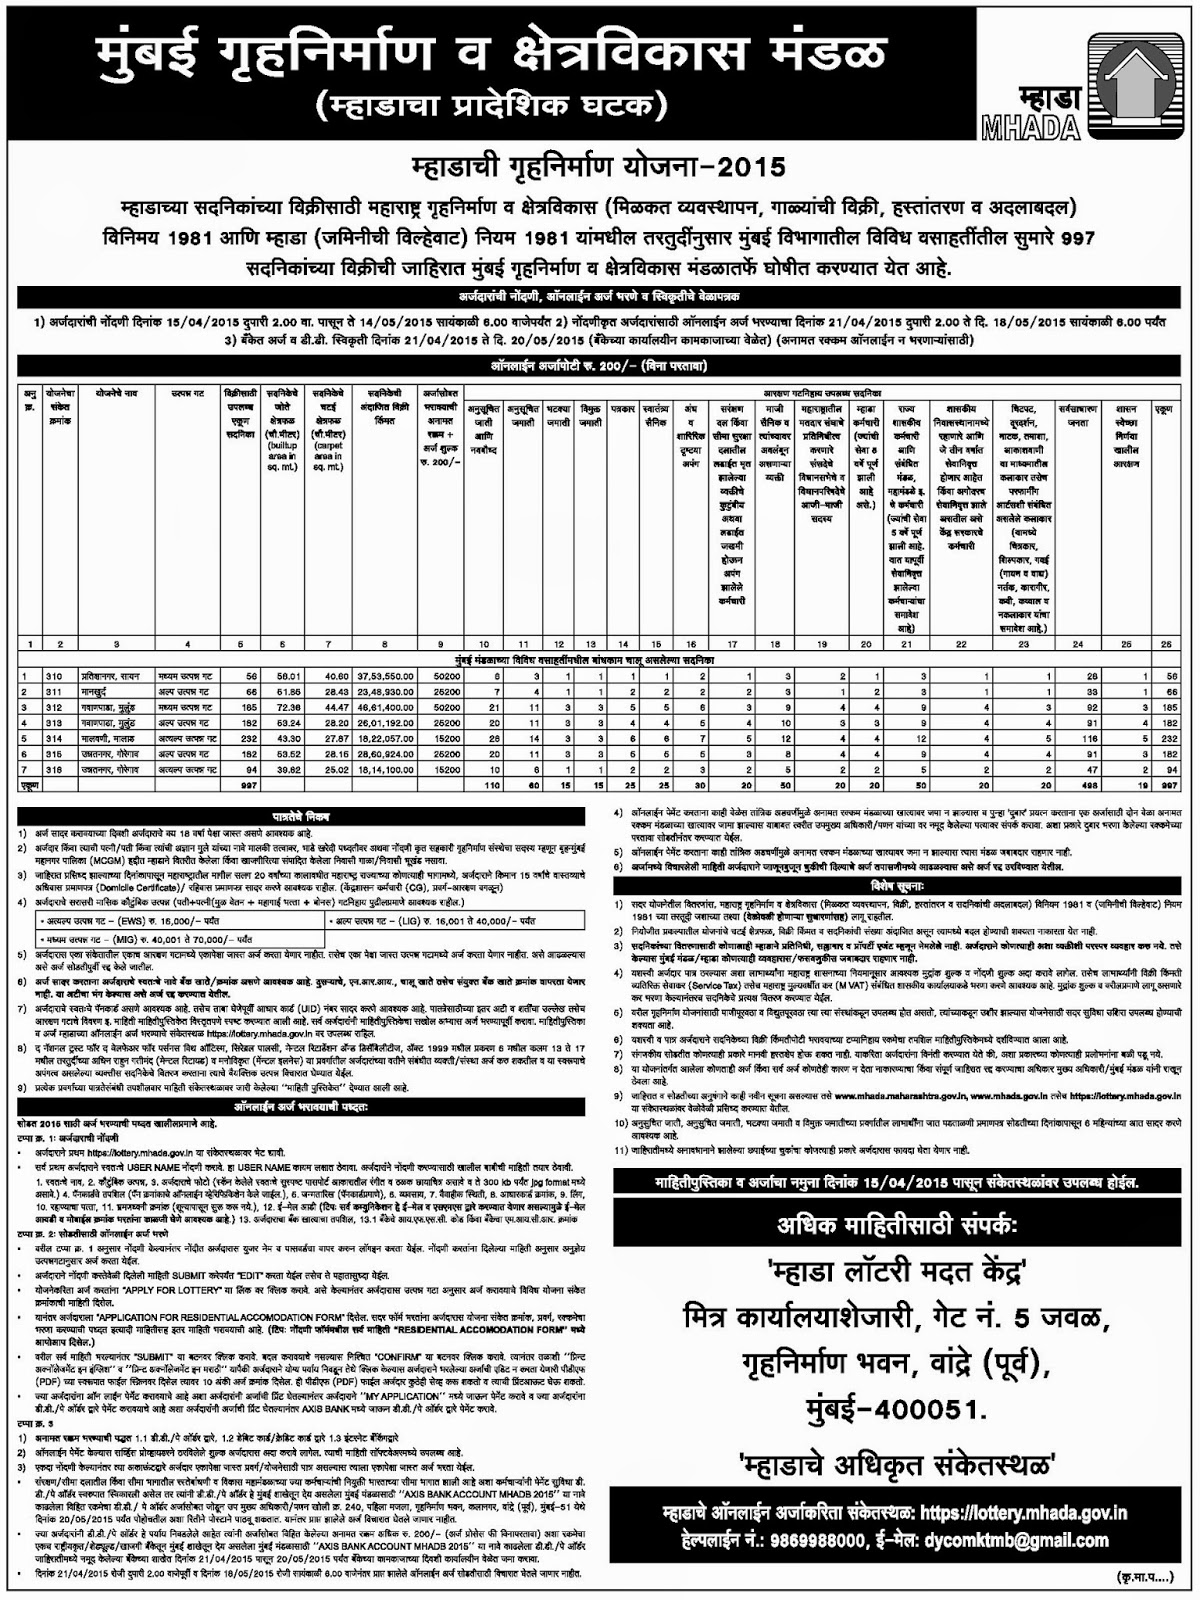 MHADA%2BScheme%2BDetails%2B2015%2BApplication%2BForm Online Form For Govt Job on railway jobs, industry jobs, english jobs, physics jobs, private sector jobs, law jobs, church jobs, hr jobs,